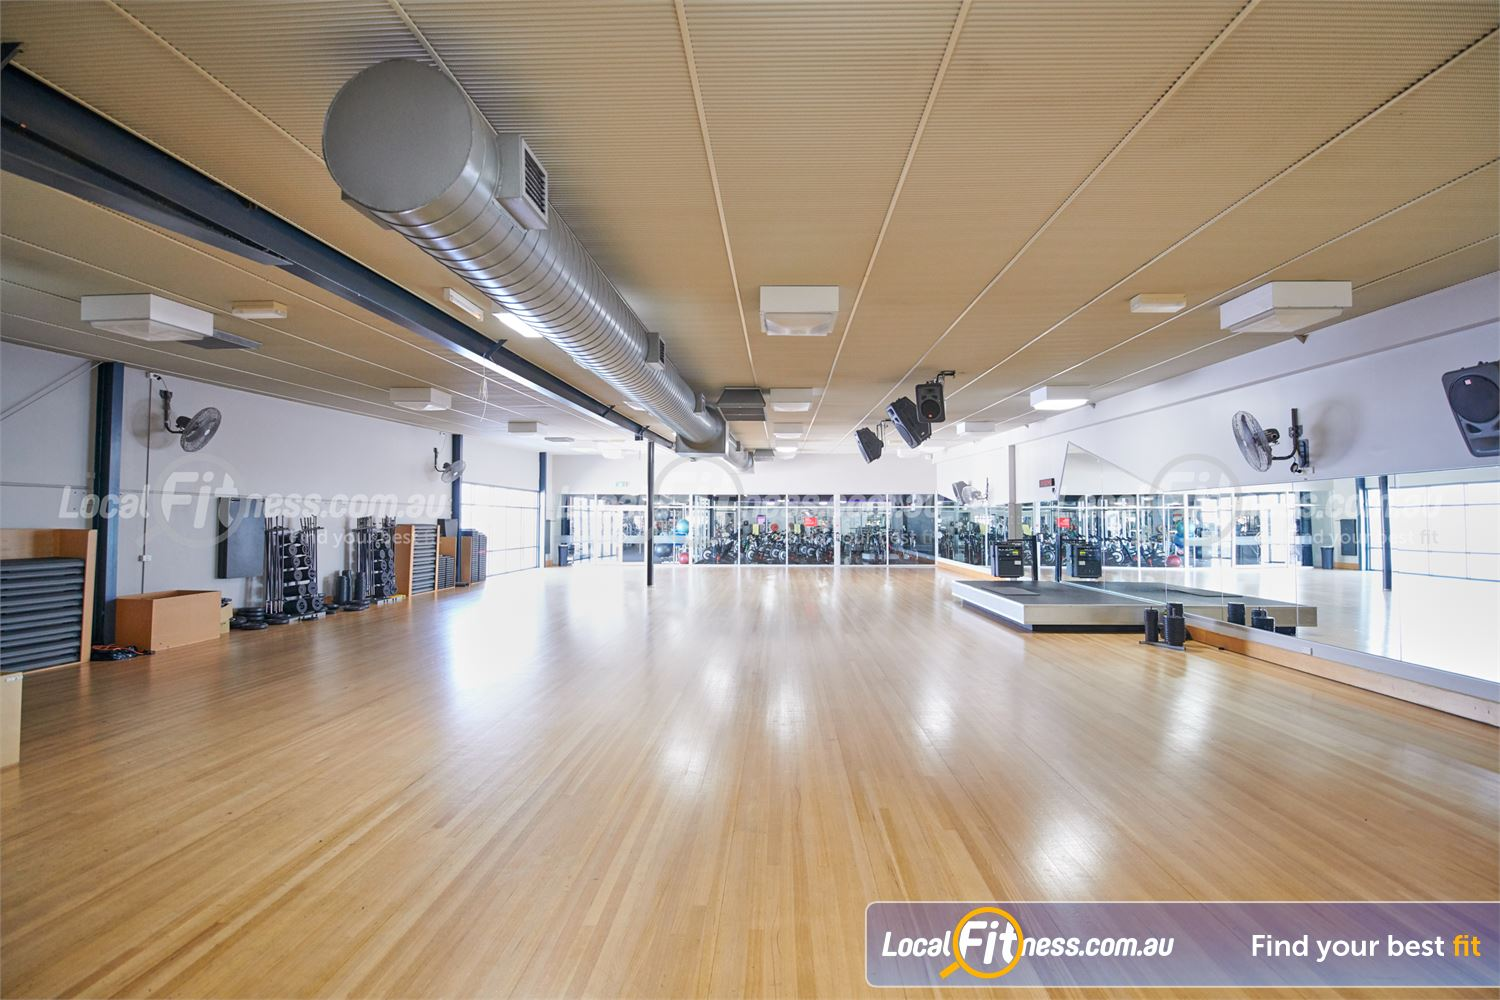 Fitness First Bayside Near Bentleigh Over 100 classes per week inc. Yoga, Pilates, Bayside Zumba, Boxing.